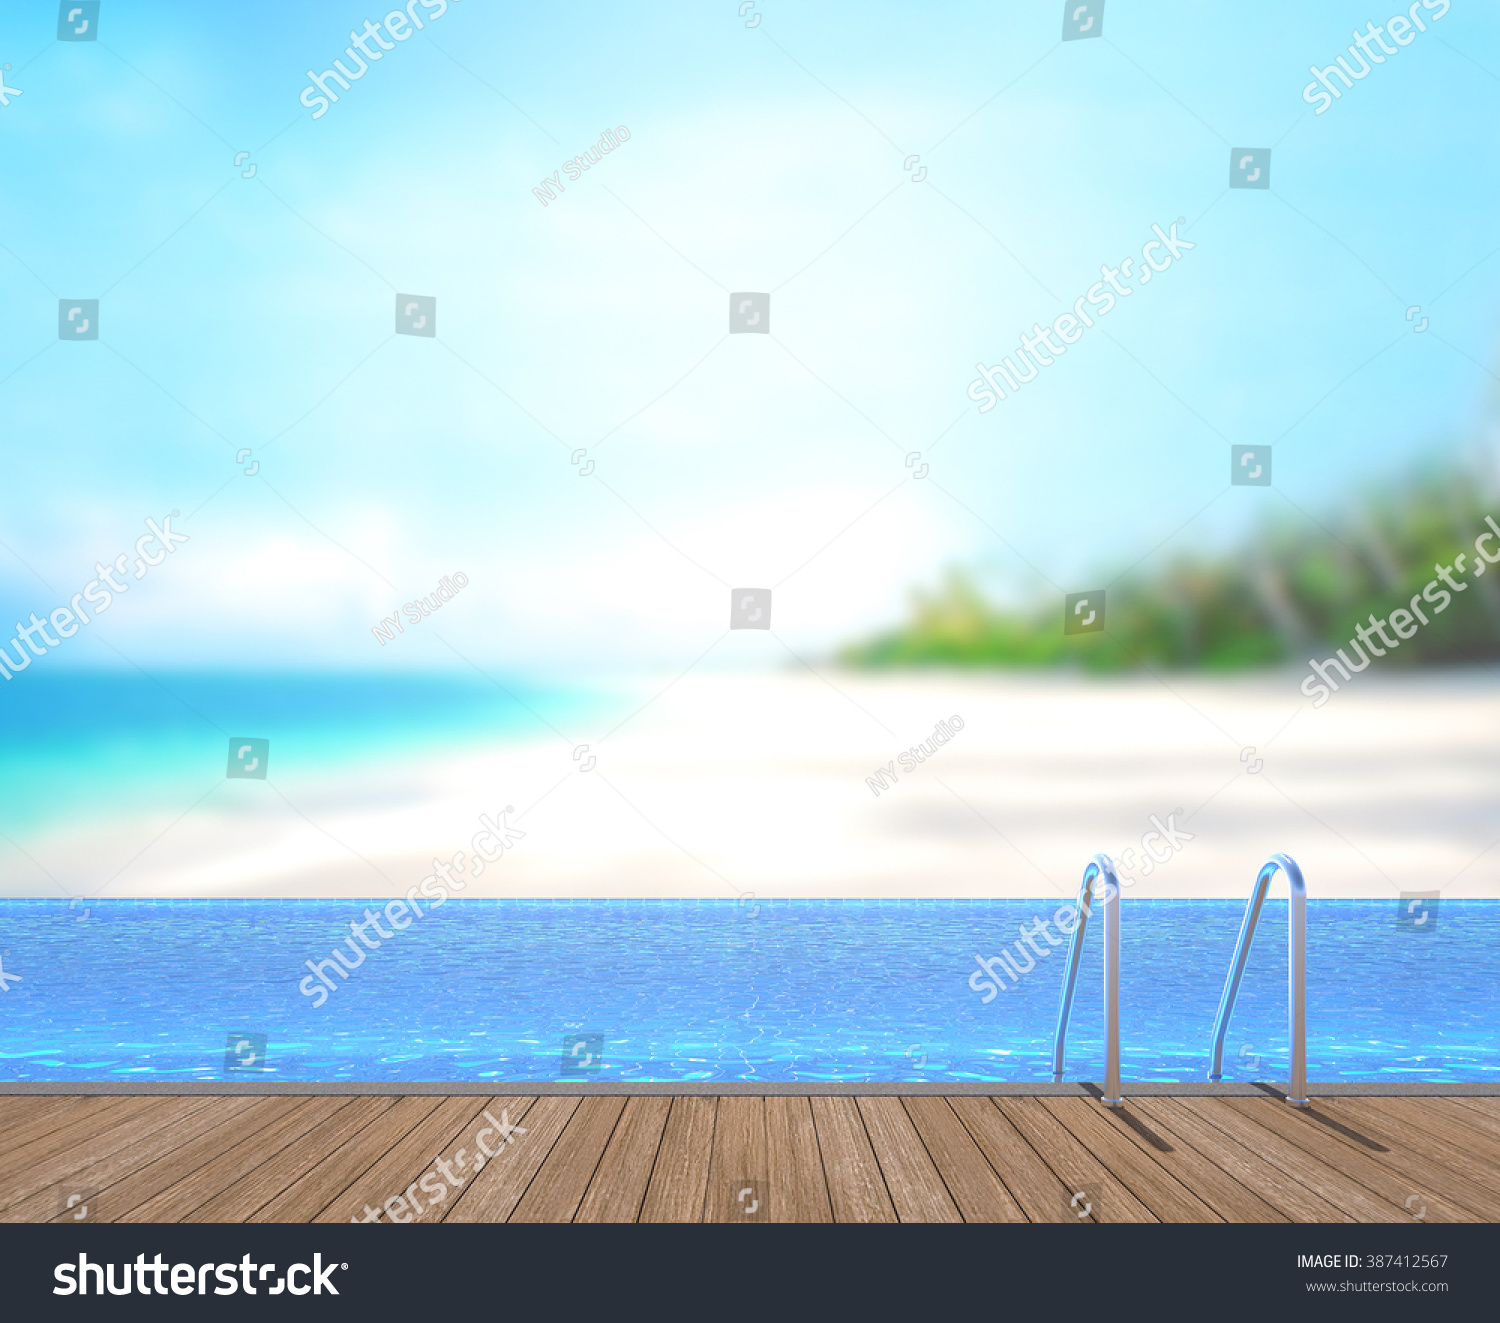 Swimming pool terrace blur nature background stock photo for Terrace nature